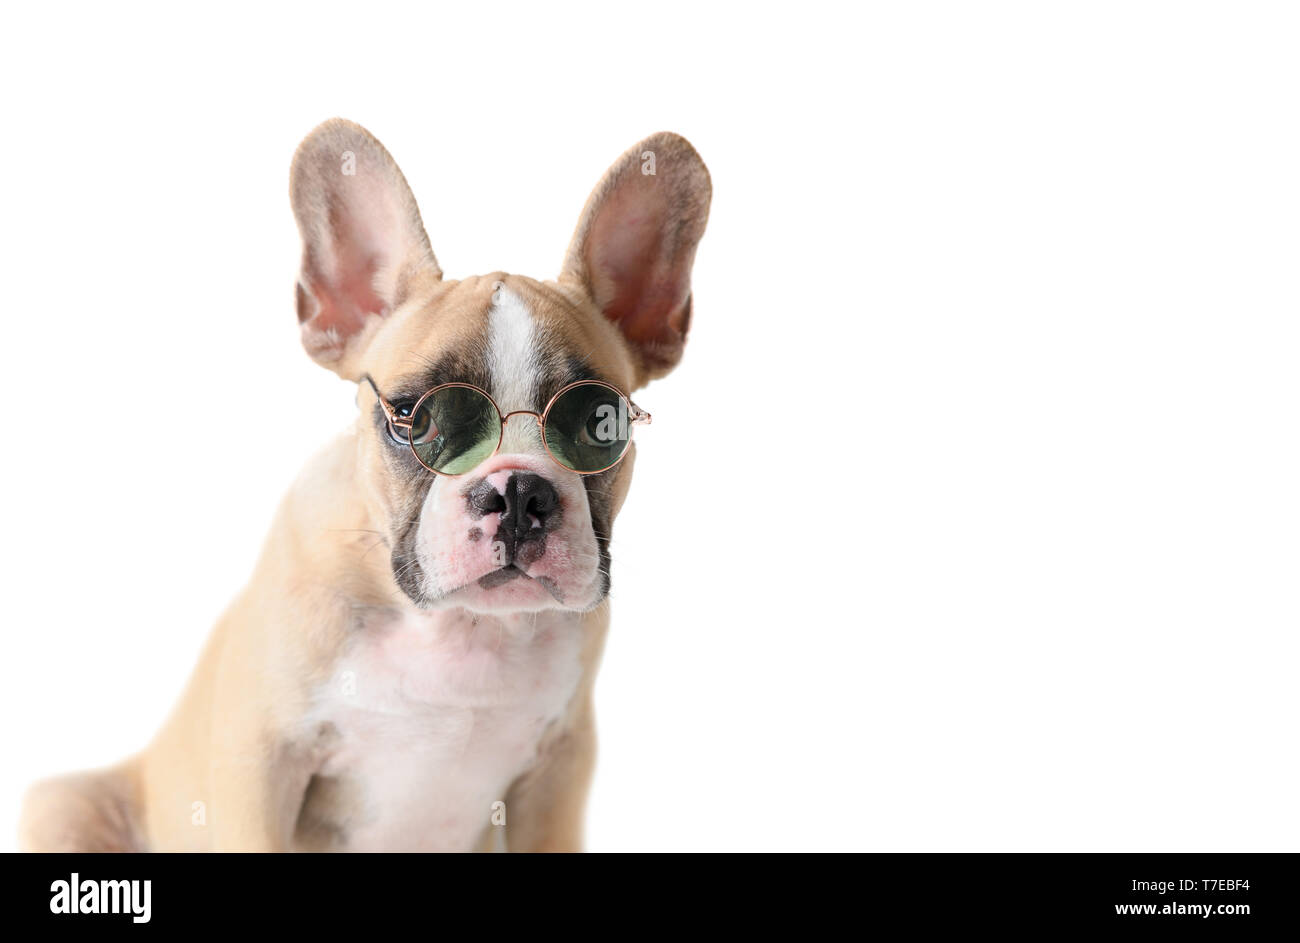 bd604878 Cute french bulldog wear sunglass isolated on white background, pet in  summer concept - Stock